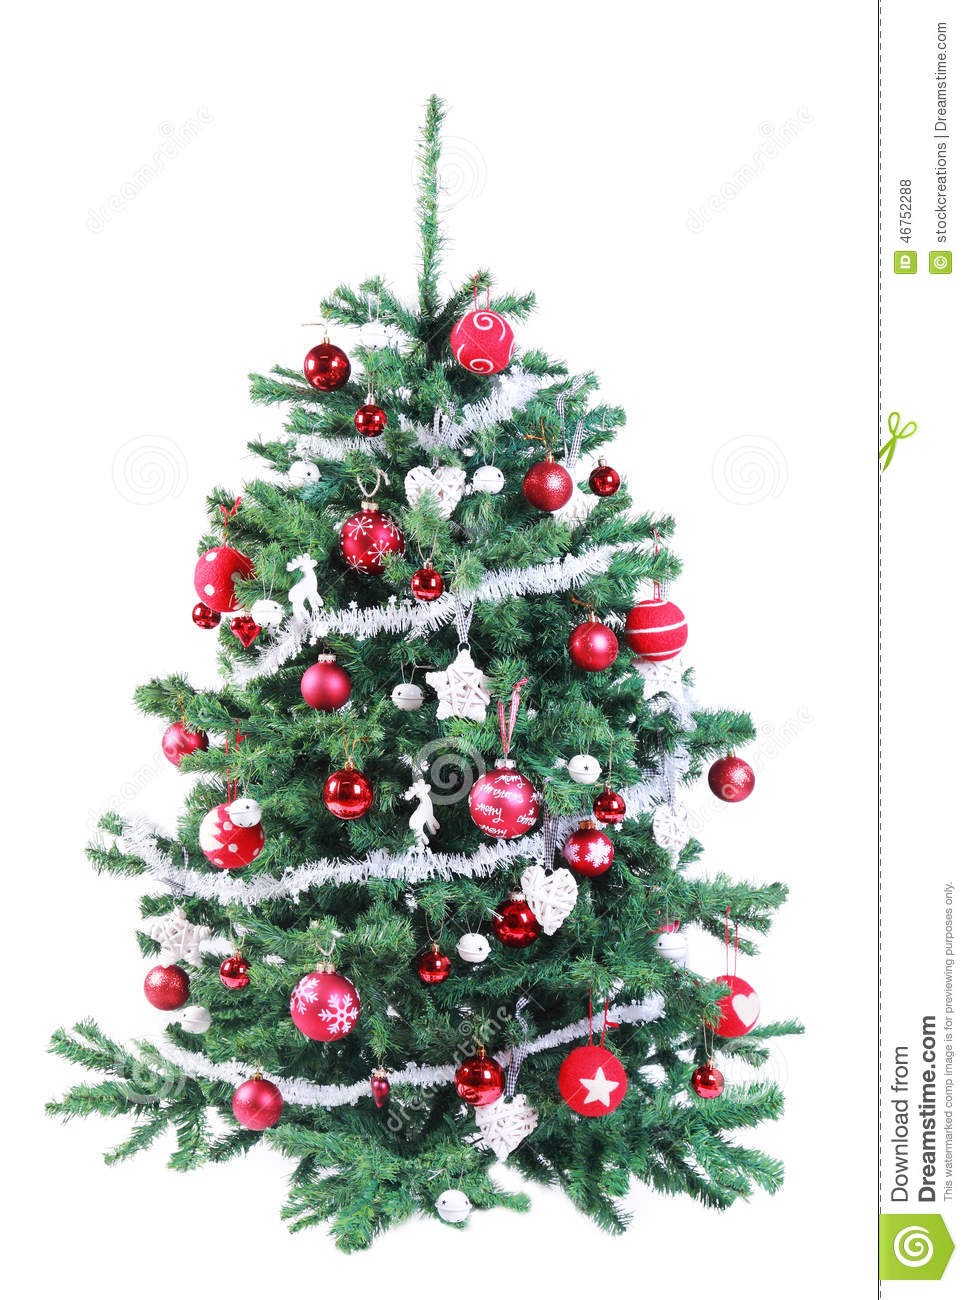 red and silver decorated christmas trees | My Web Value